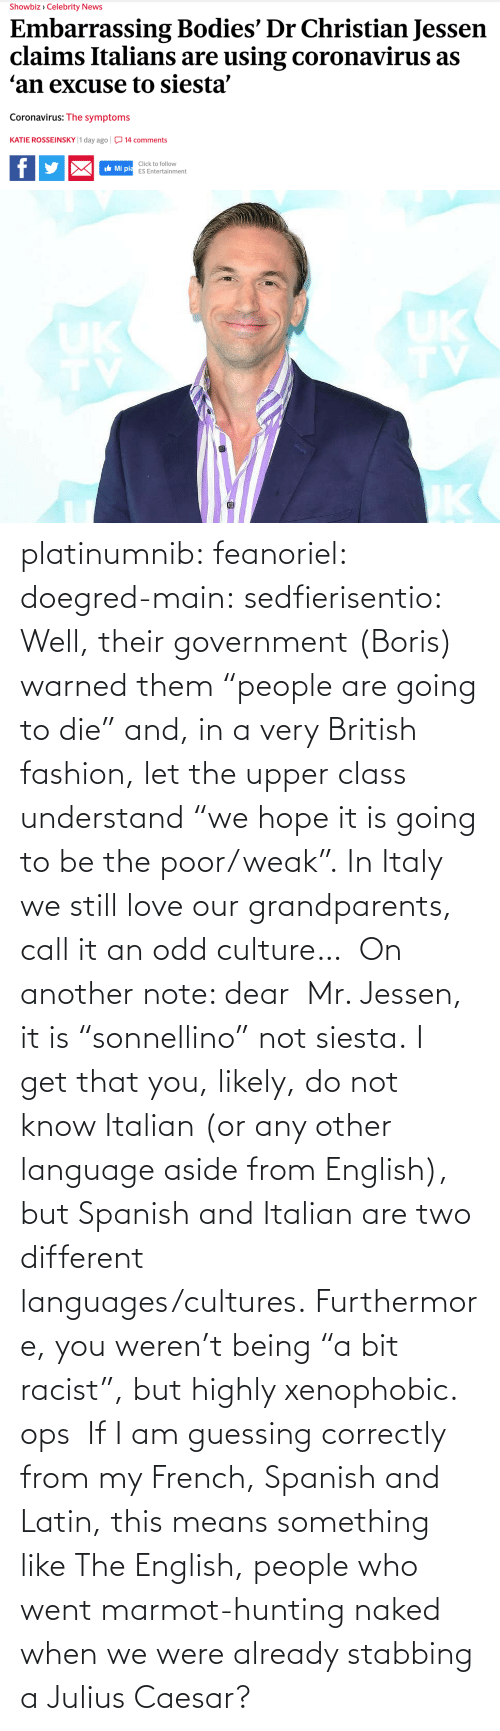 "culture: platinumnib:  feanoriel: doegred-main:  sedfierisentio:  Well, their government (Boris) warned them ""people are going to die"" and, in a very British fashion, let the upper class understand ""we hope it is going to be the poor/weak"". In Italy we still love our grandparents, call it an odd culture…  On another note: dear  Mr. Jessen, it is ""sonnellino"" not siesta. I get that you, likely, do not know Italian (or any other language aside from English), but Spanish and Italian are two different languages/cultures. Furthermore, you weren't being ""a bit racist"", but highly xenophobic.   ops   If I am guessing correctly from my French, Spanish and Latin, this means something like The English, people who went marmot-hunting naked when we were already stabbing a Julius Caesar?"